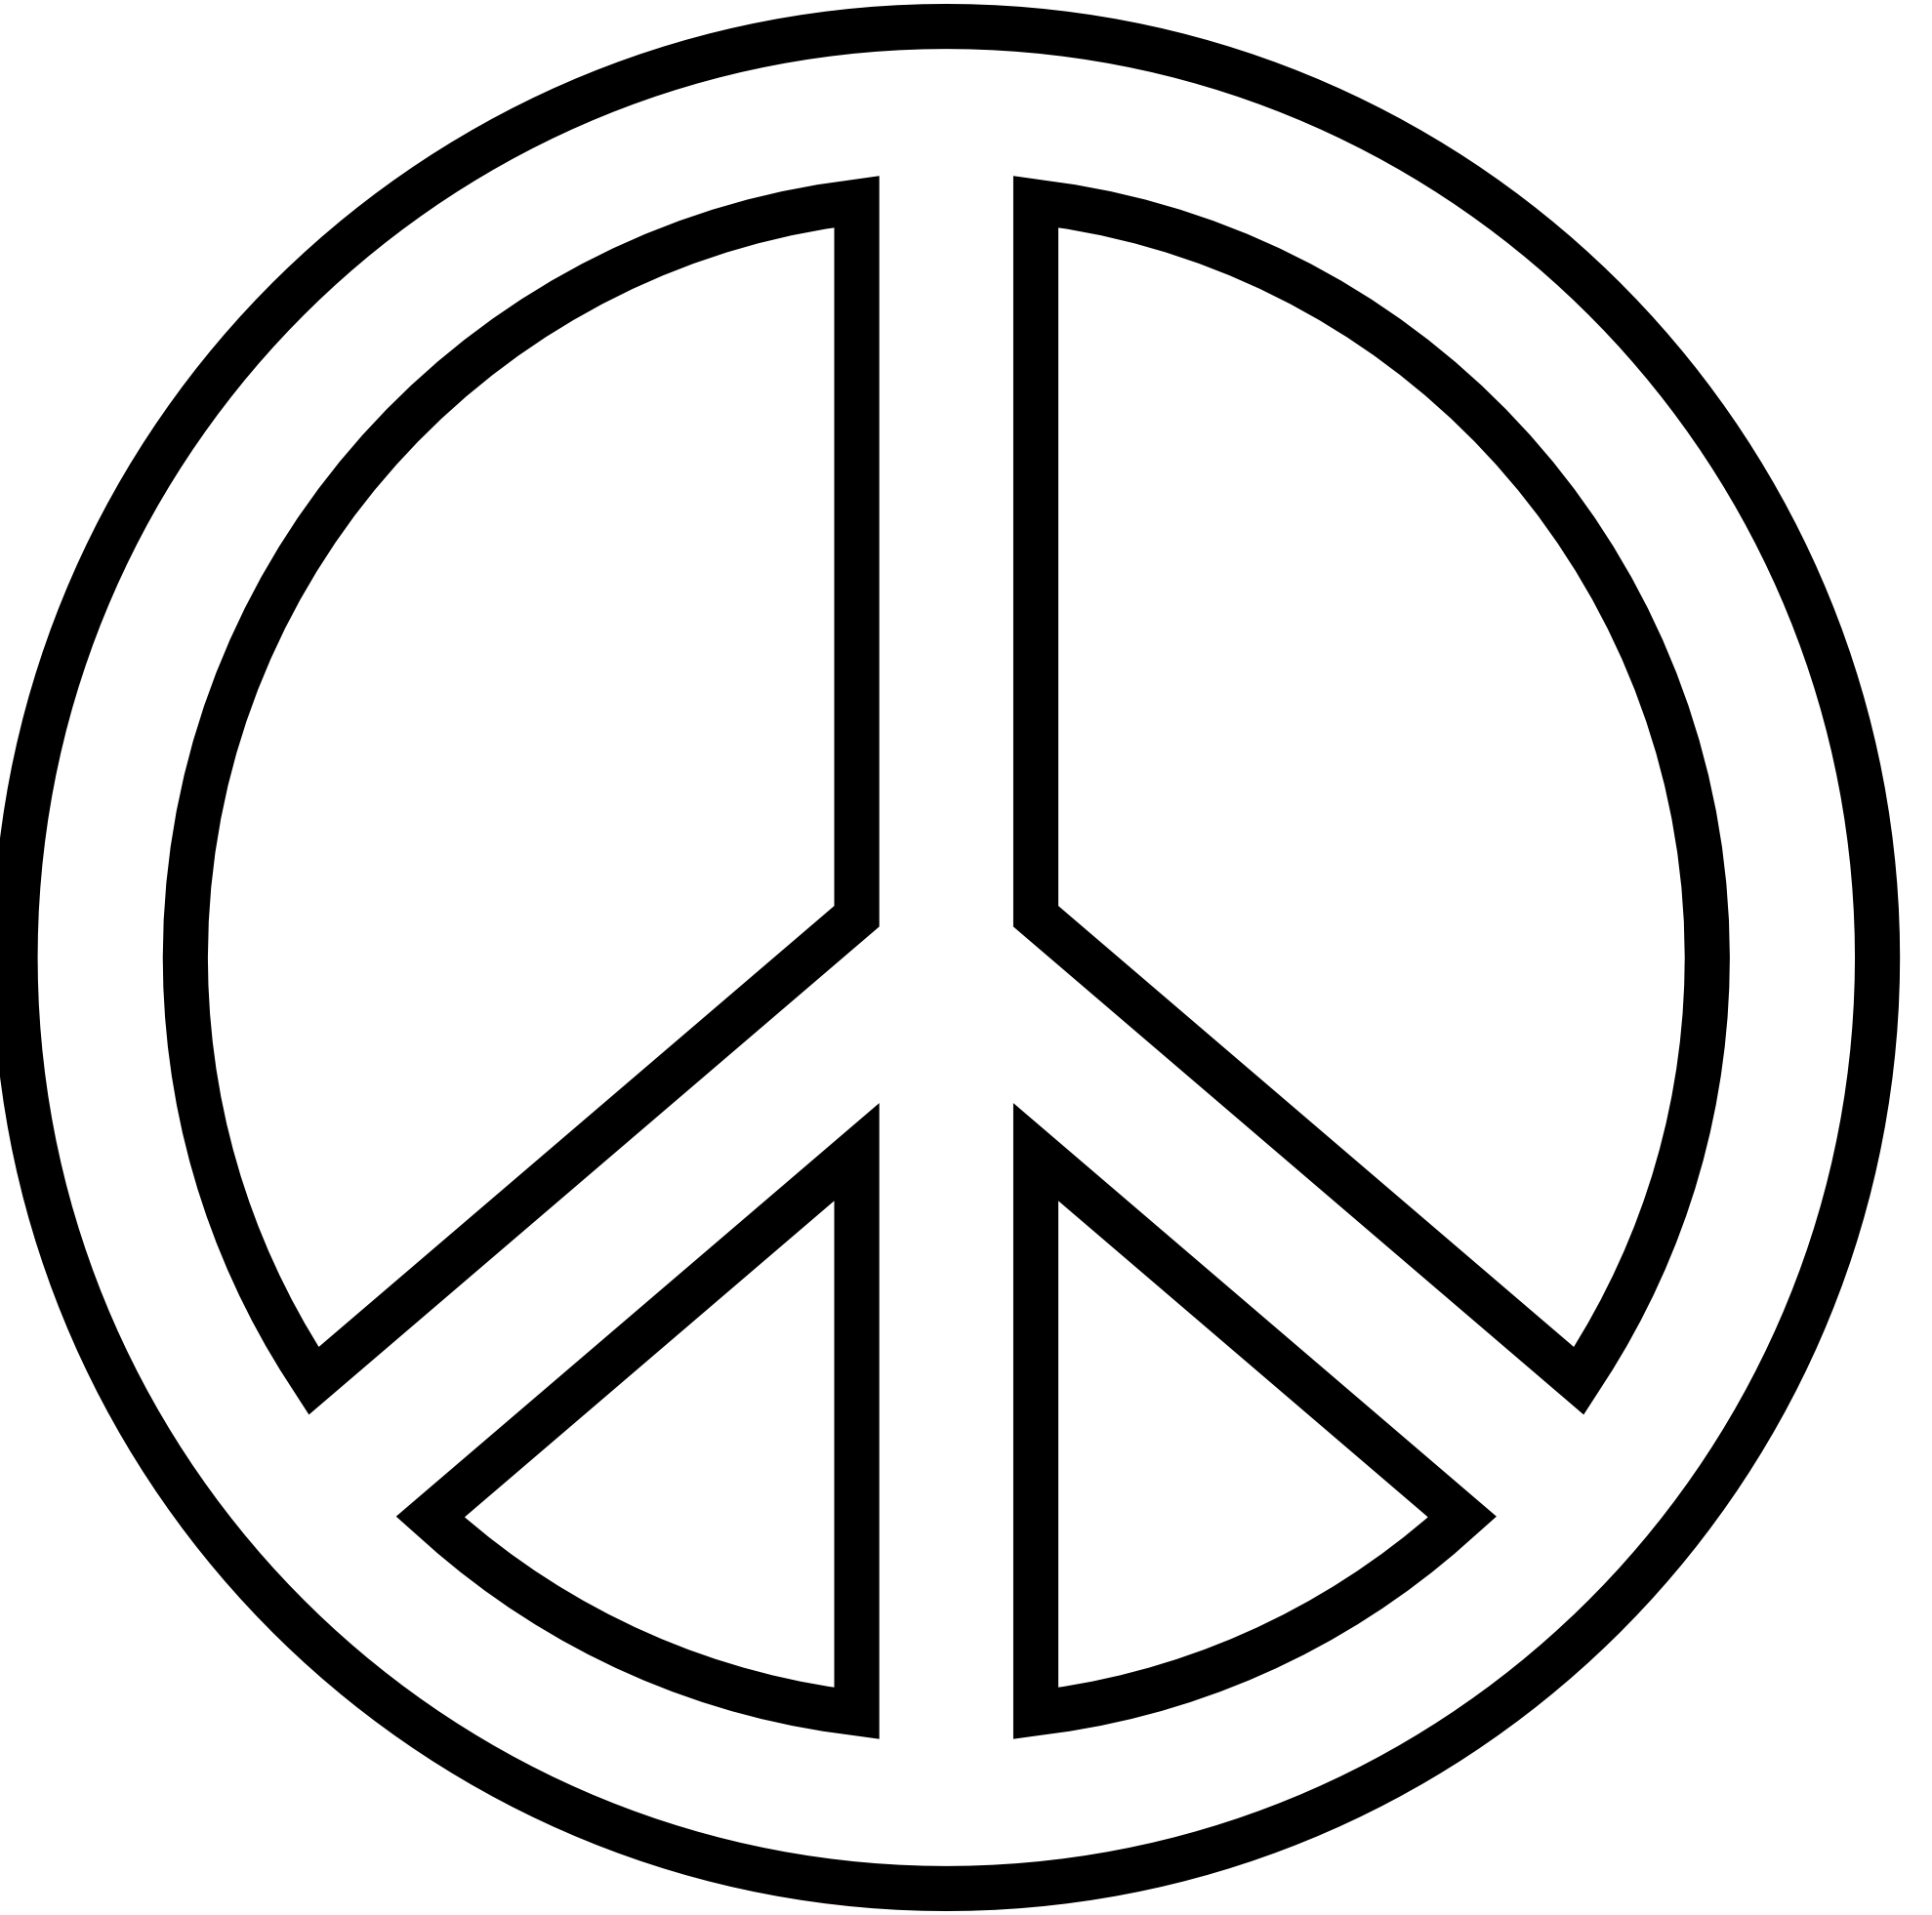 Peace Symbol Png Images Free Download